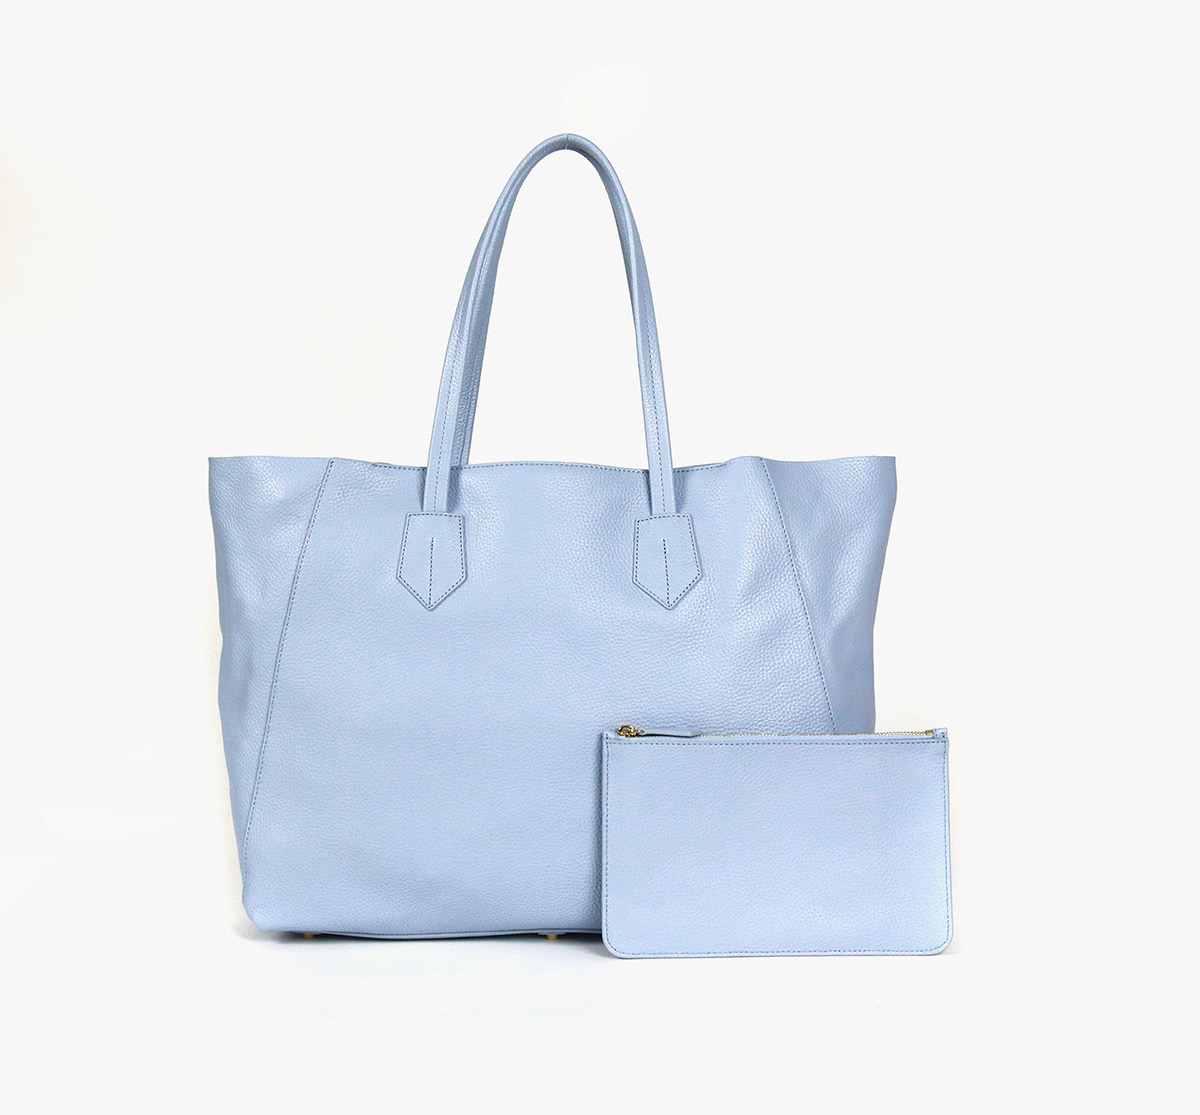 neely and chloe no. 2. Large Tote steel blue front view